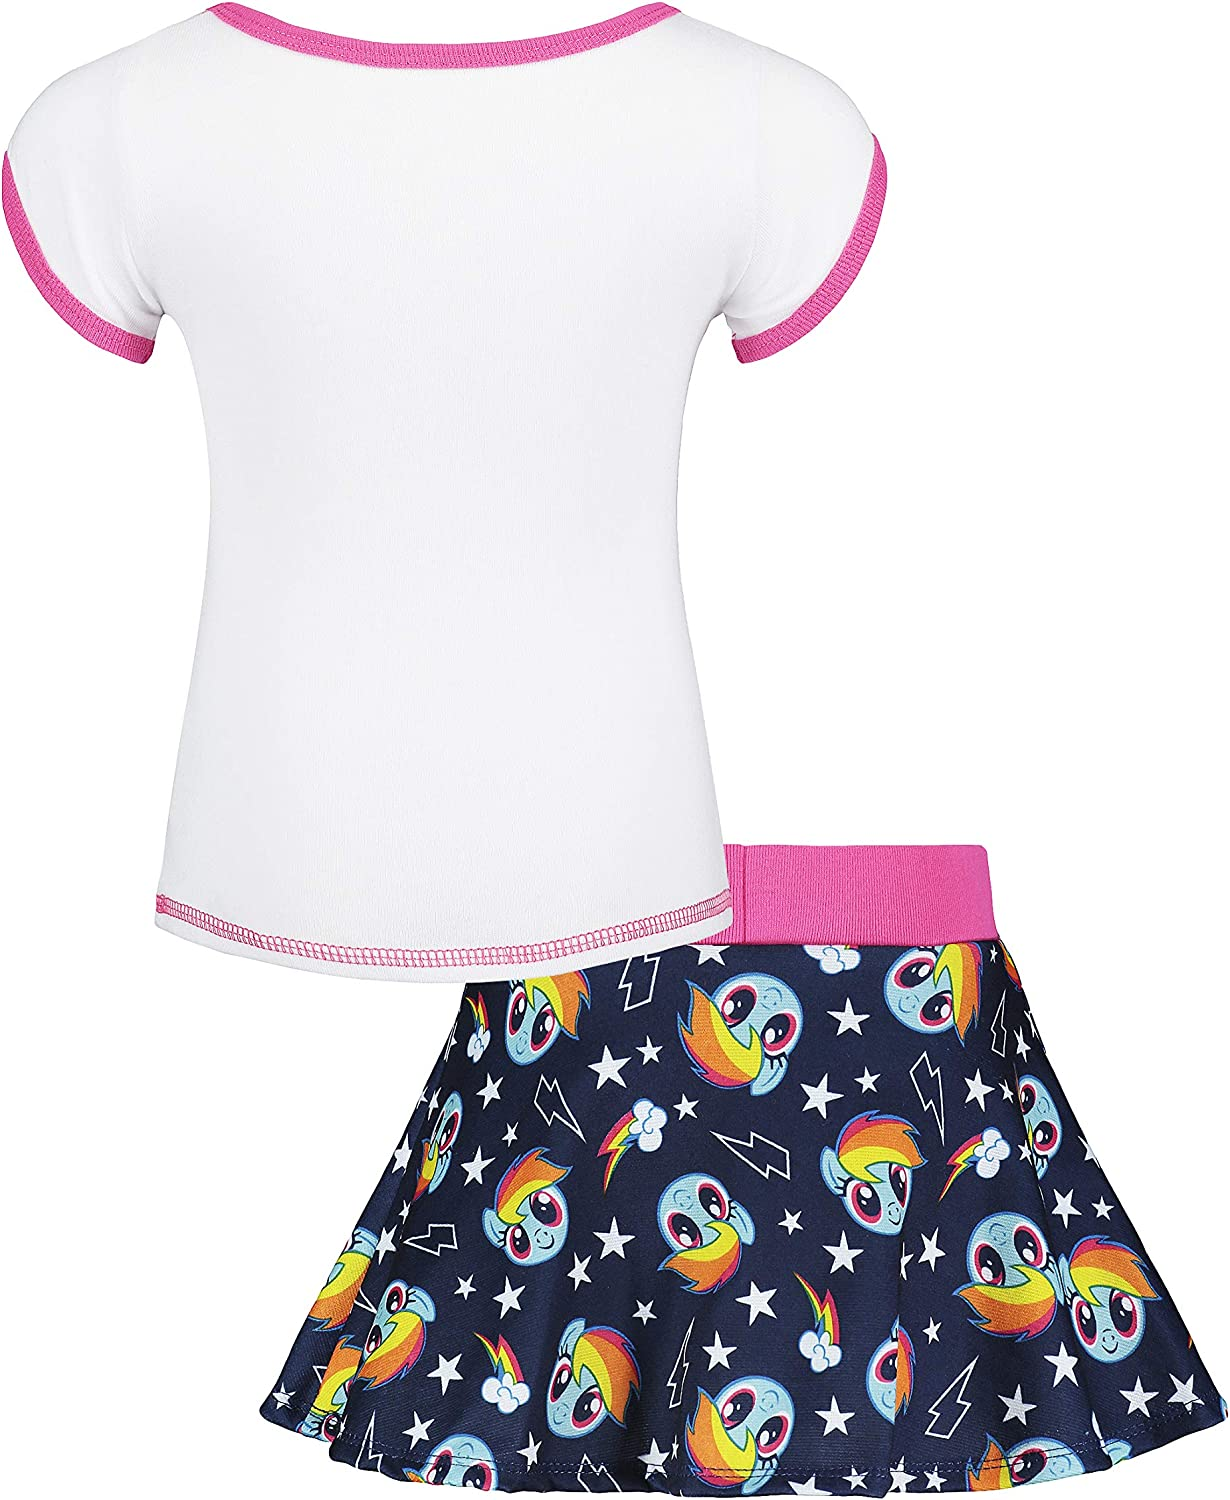 Amazon.com: my little pony Rainbow Dash bebé niña playera y ...